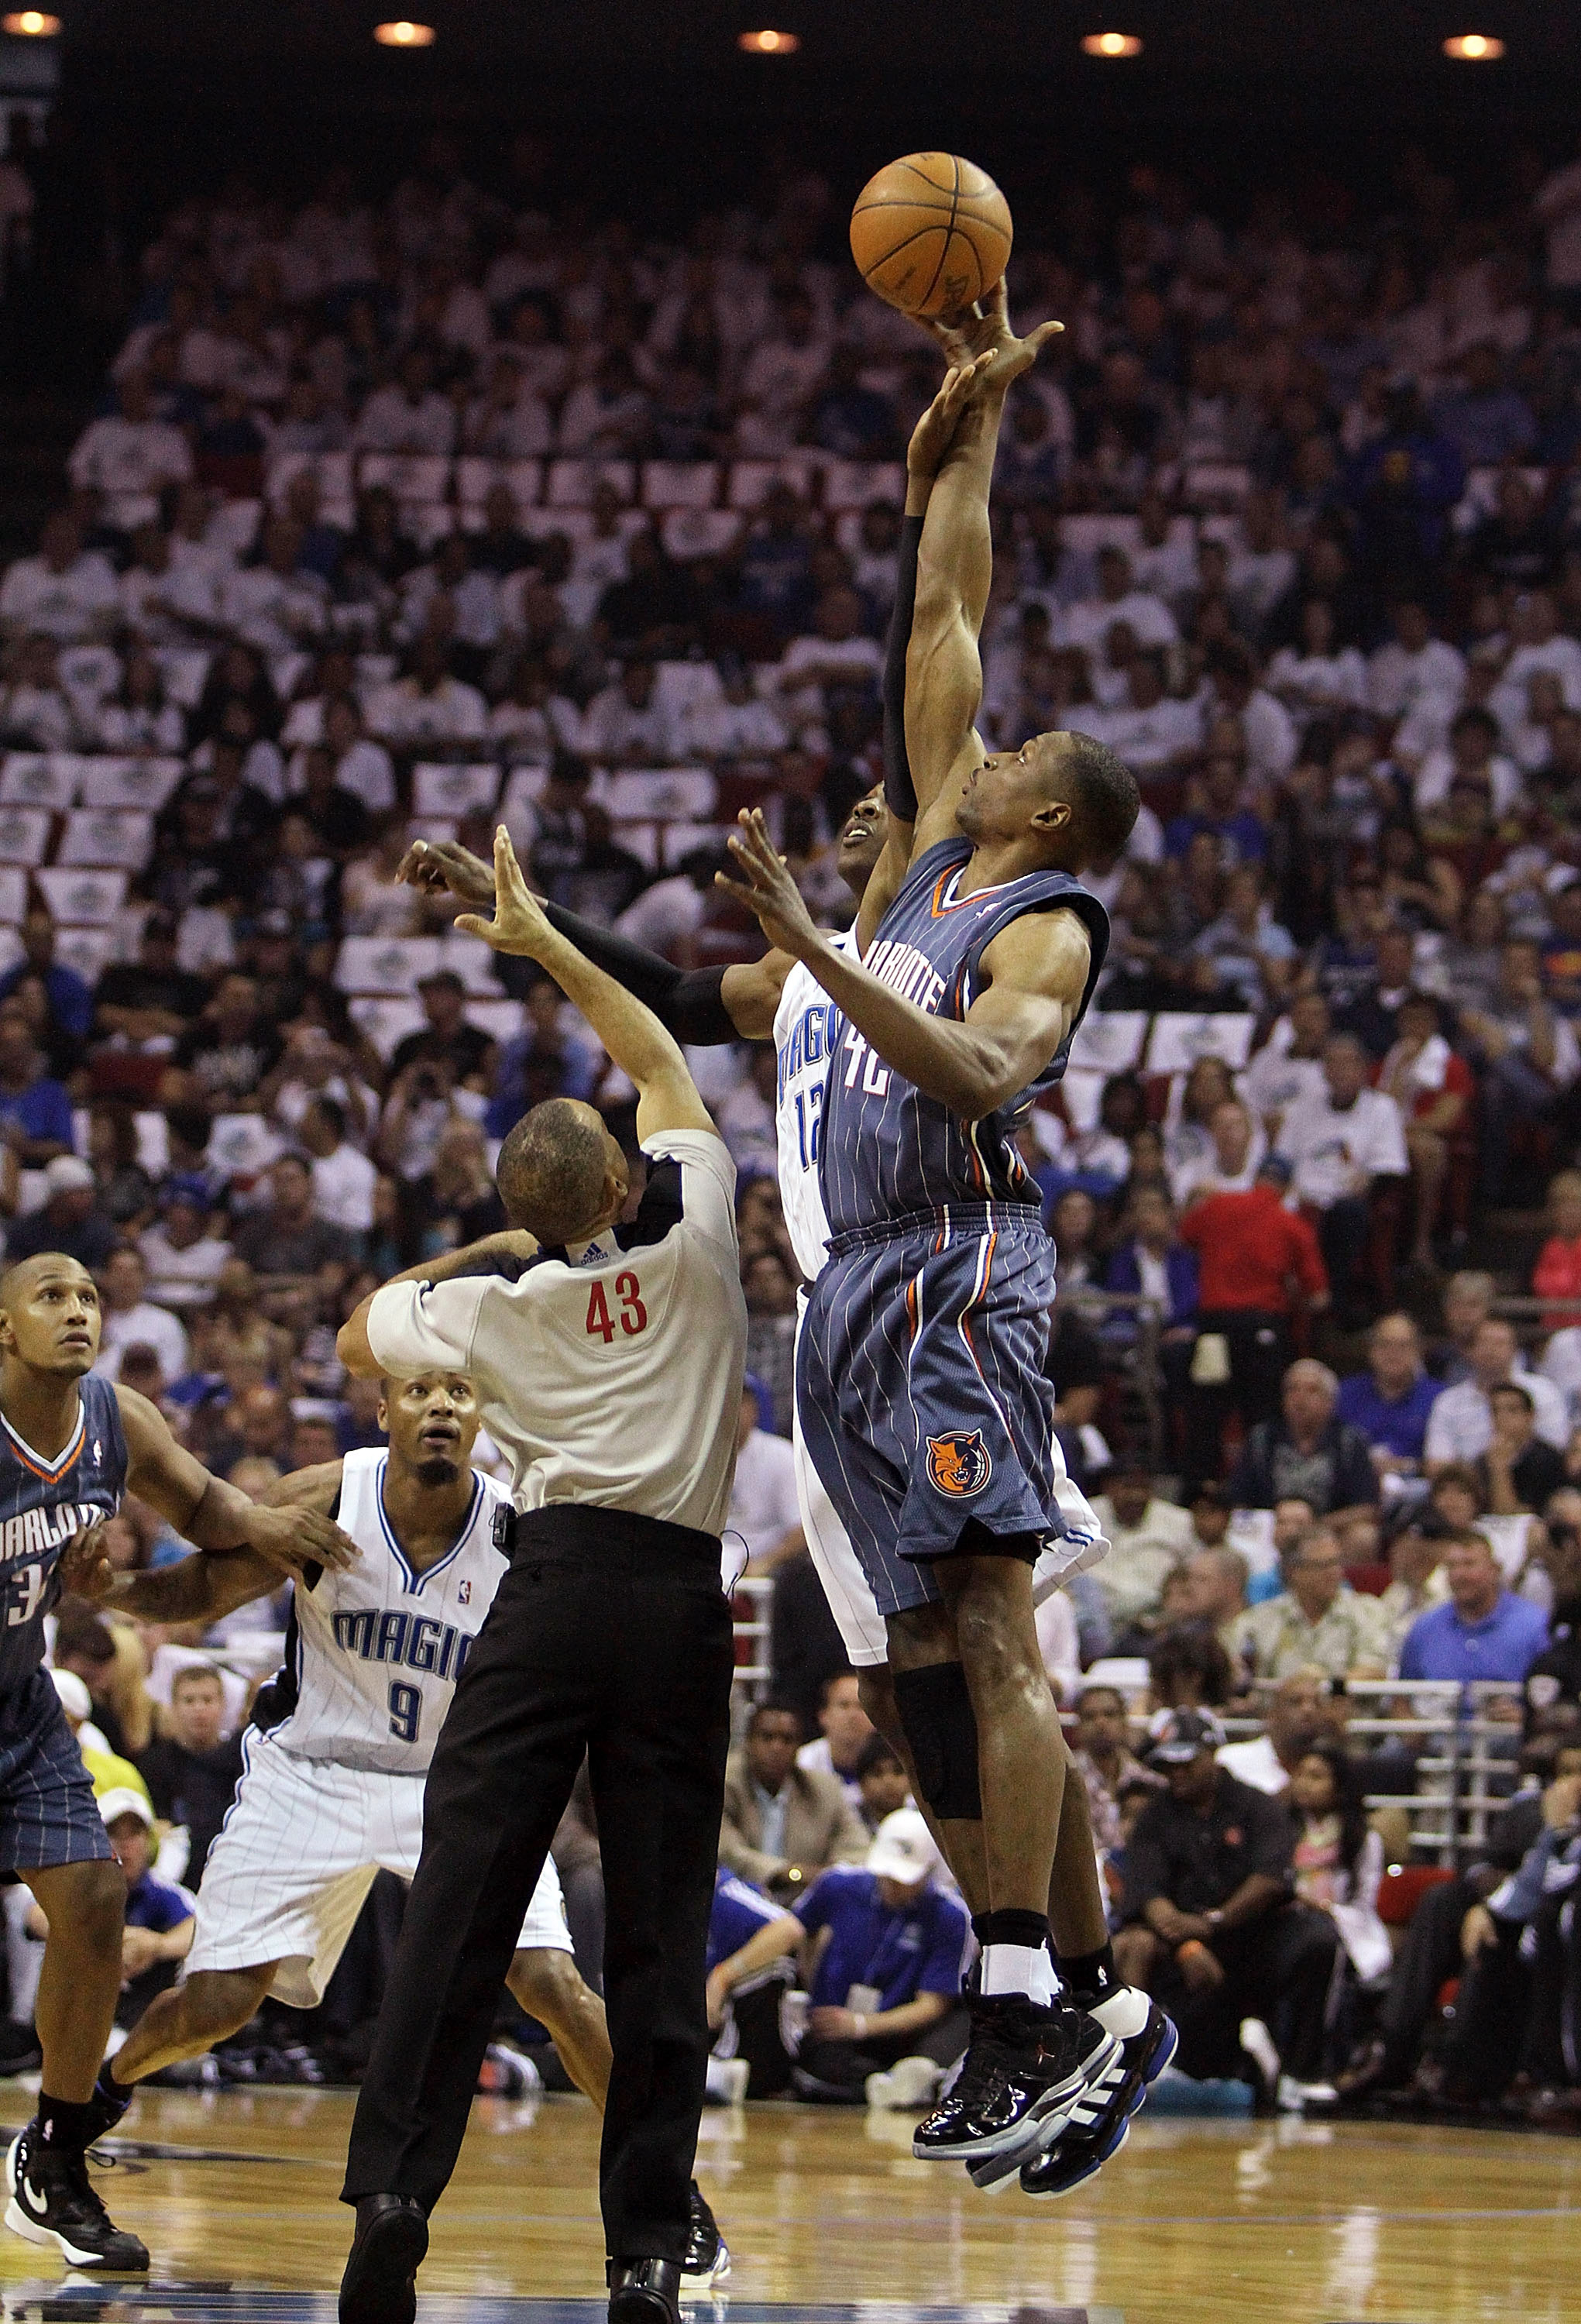 ORLANDO, FL - APRIL 18:  Theo Ratliff #42 of the Charlotte Bobcats gets the opening tip over Dwight Howard #12 of the Orlando Magic after being tossed into the air by official Dan Crawford  #43 in Game One of the Eastern Conference Quarterfinals during th